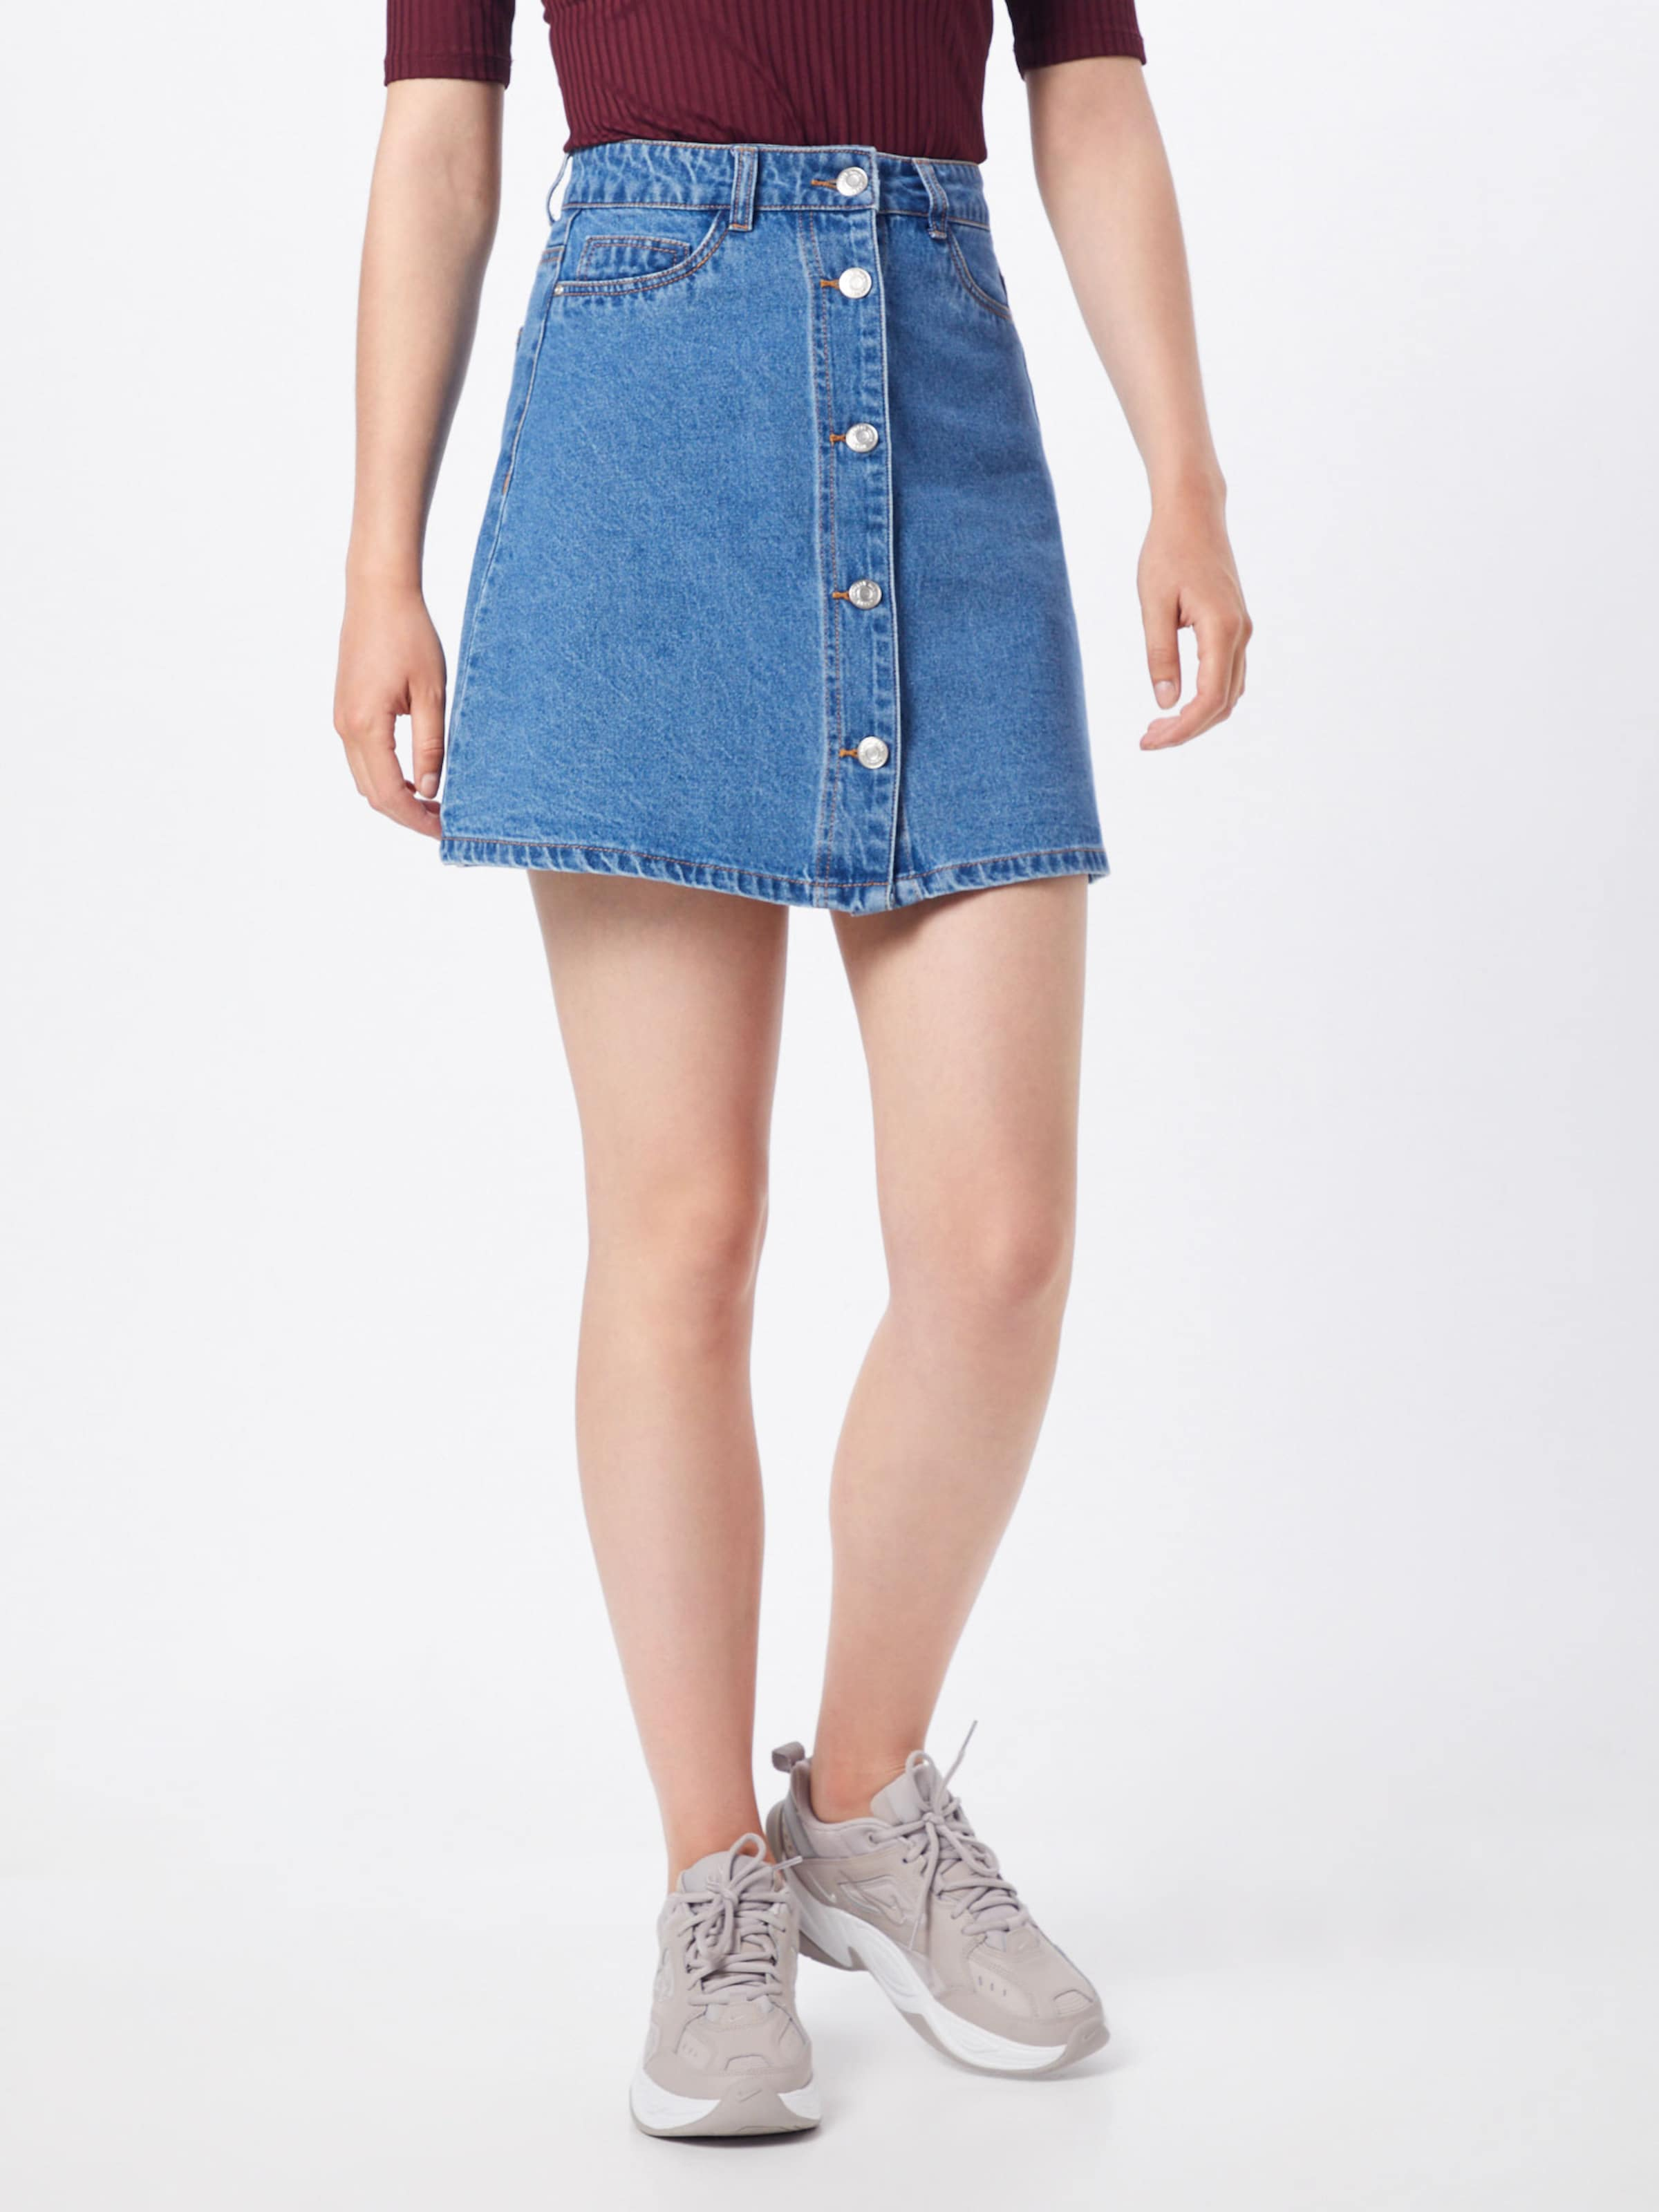 May 'sunny' Noisy En Bleu Jupe Denim bf76gy